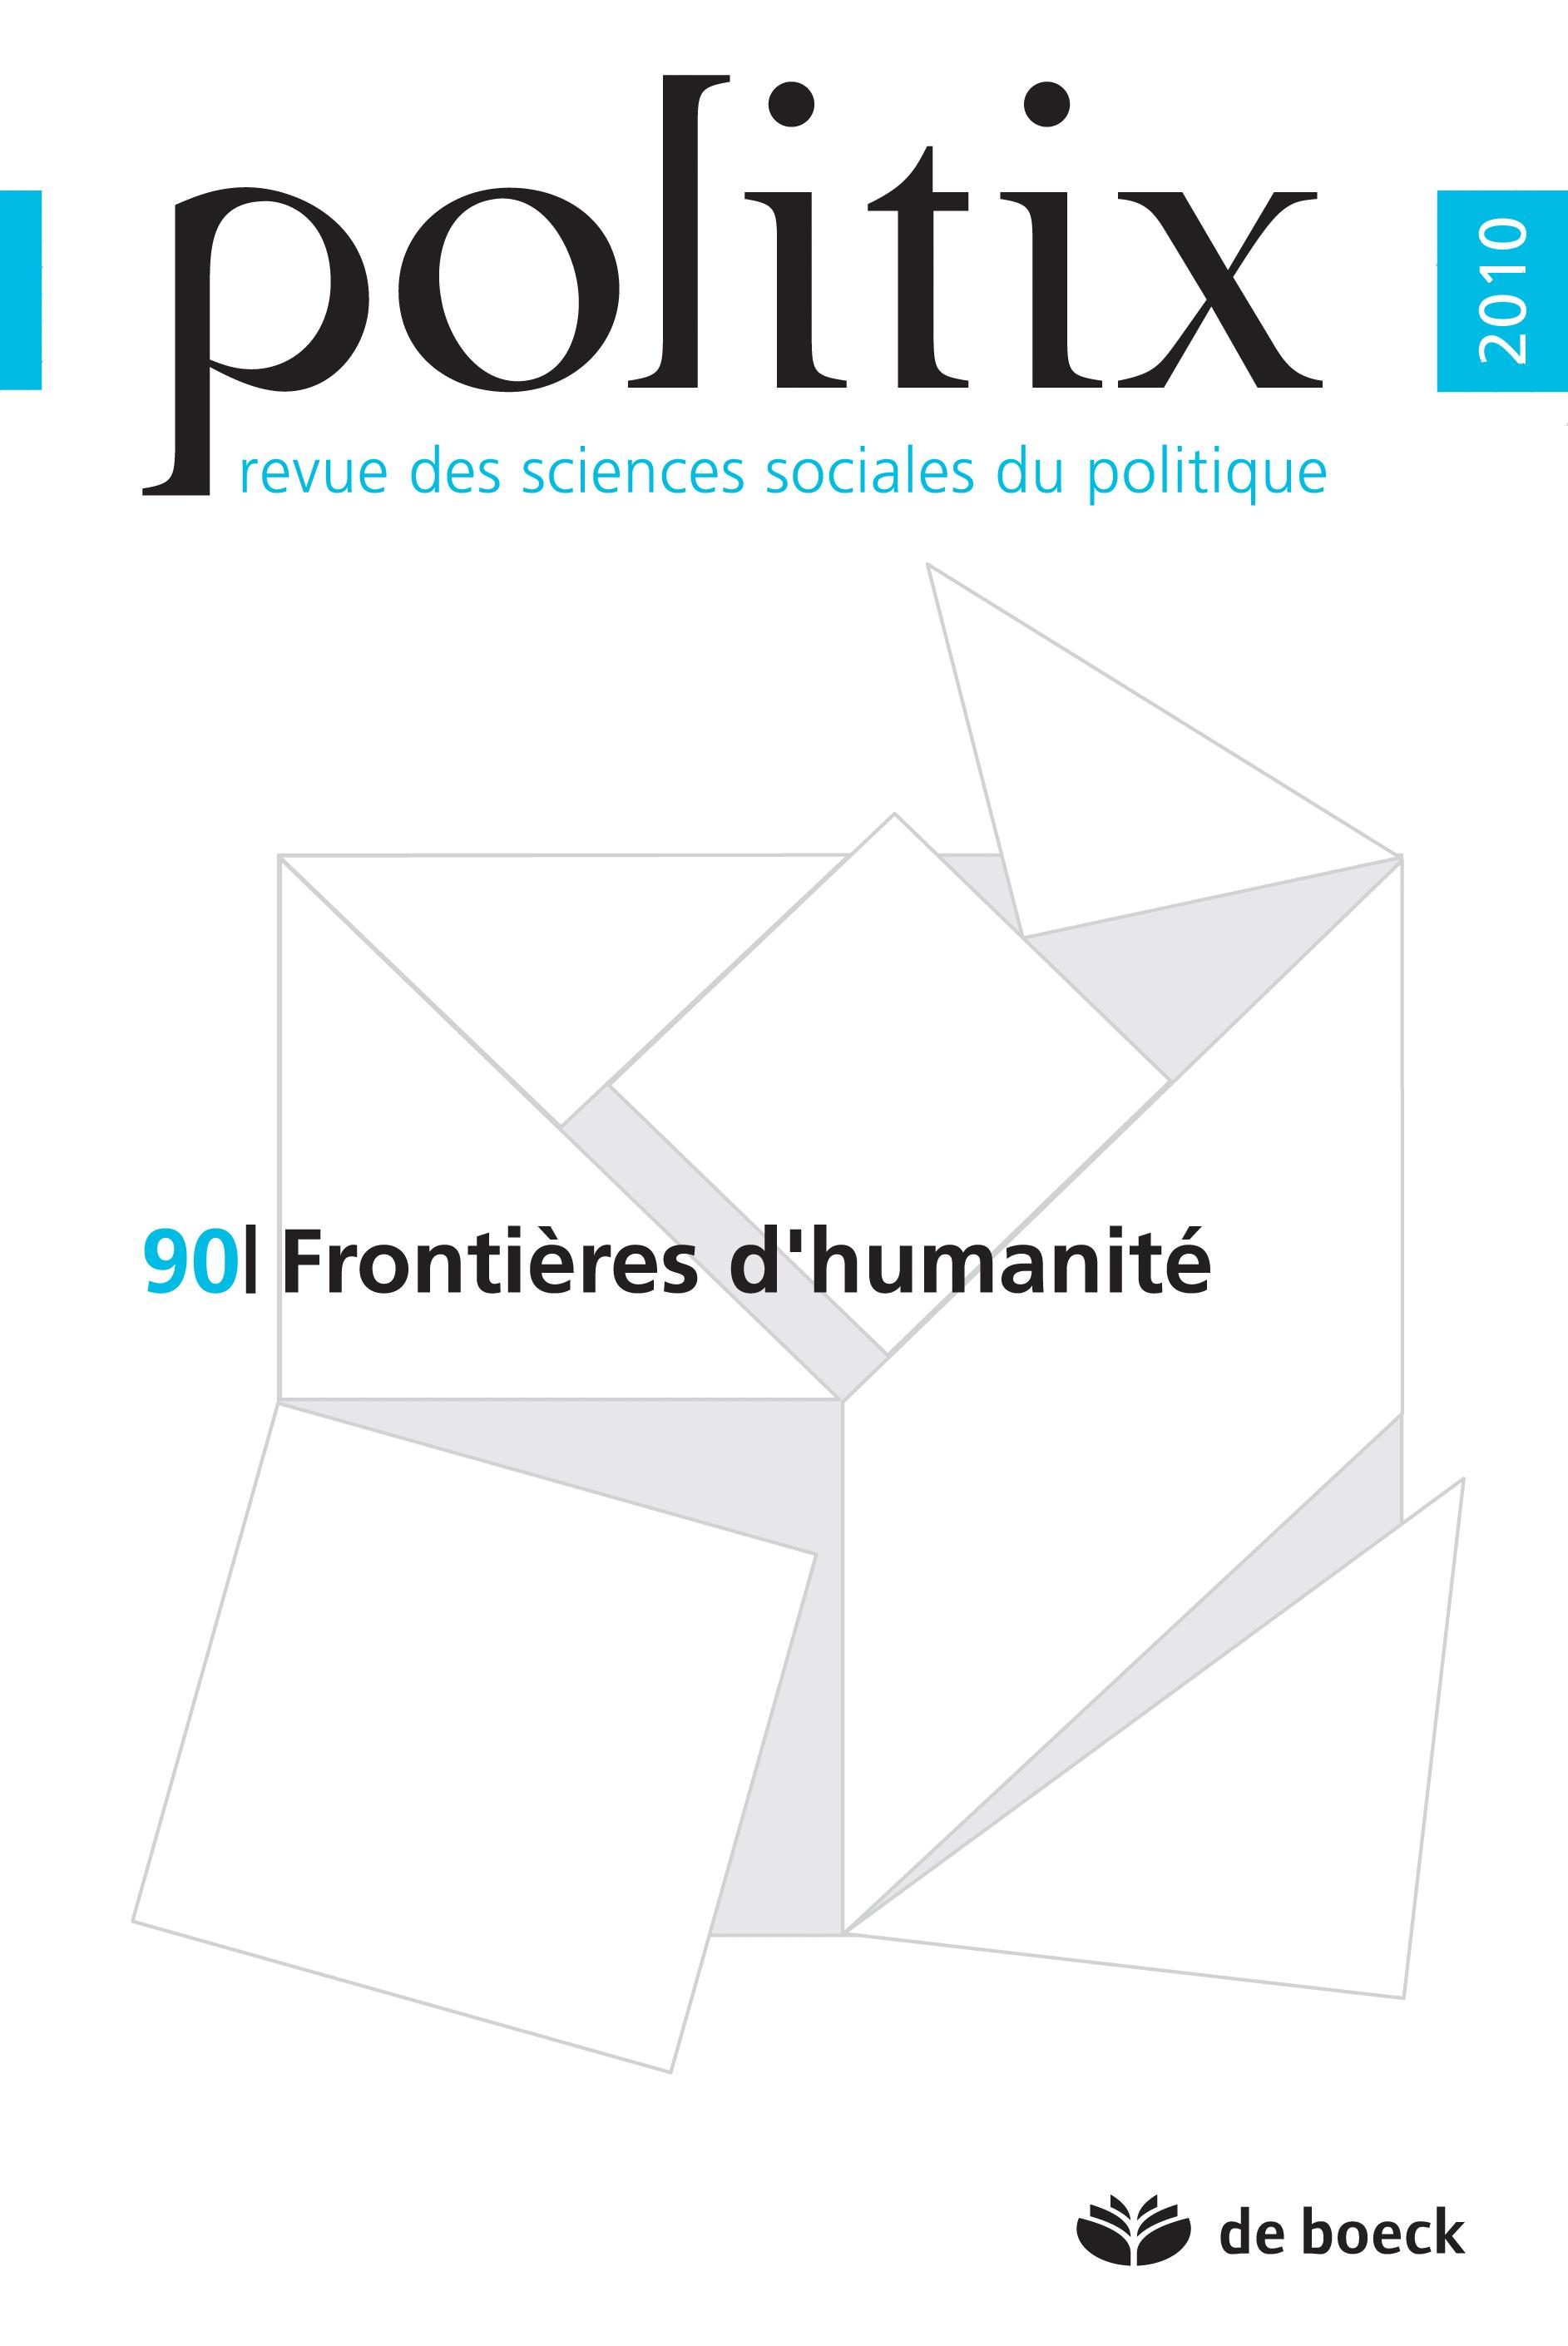 POLITIX 2010 VOLUME 23 N.90 FRONTIERES D'HUMANITE